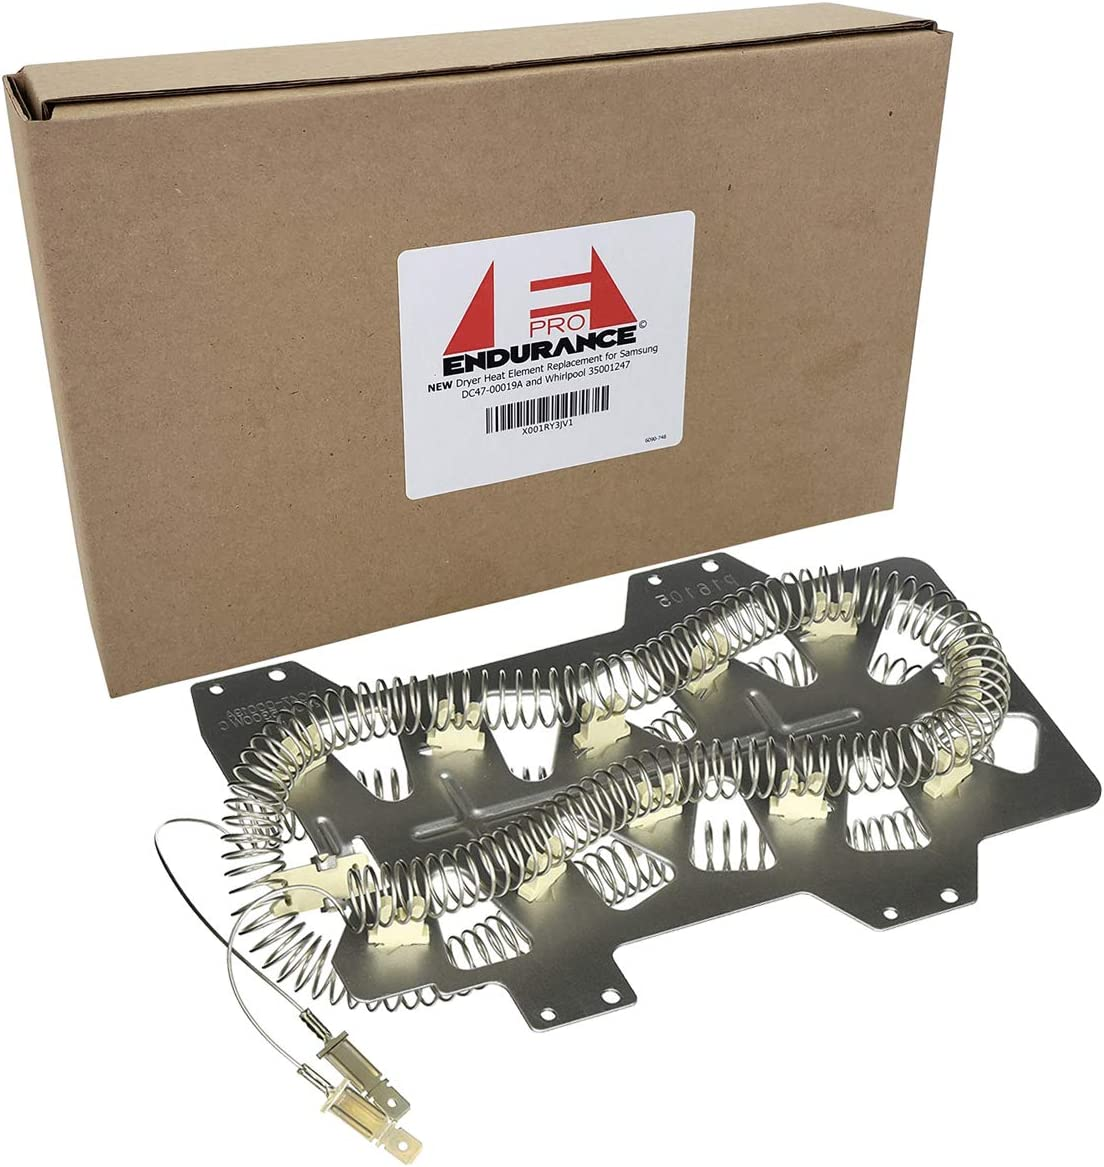 Endurance Pro Dryer Heat Element Replacement for Samsung DC47-00019A and Whirlpool 35001247